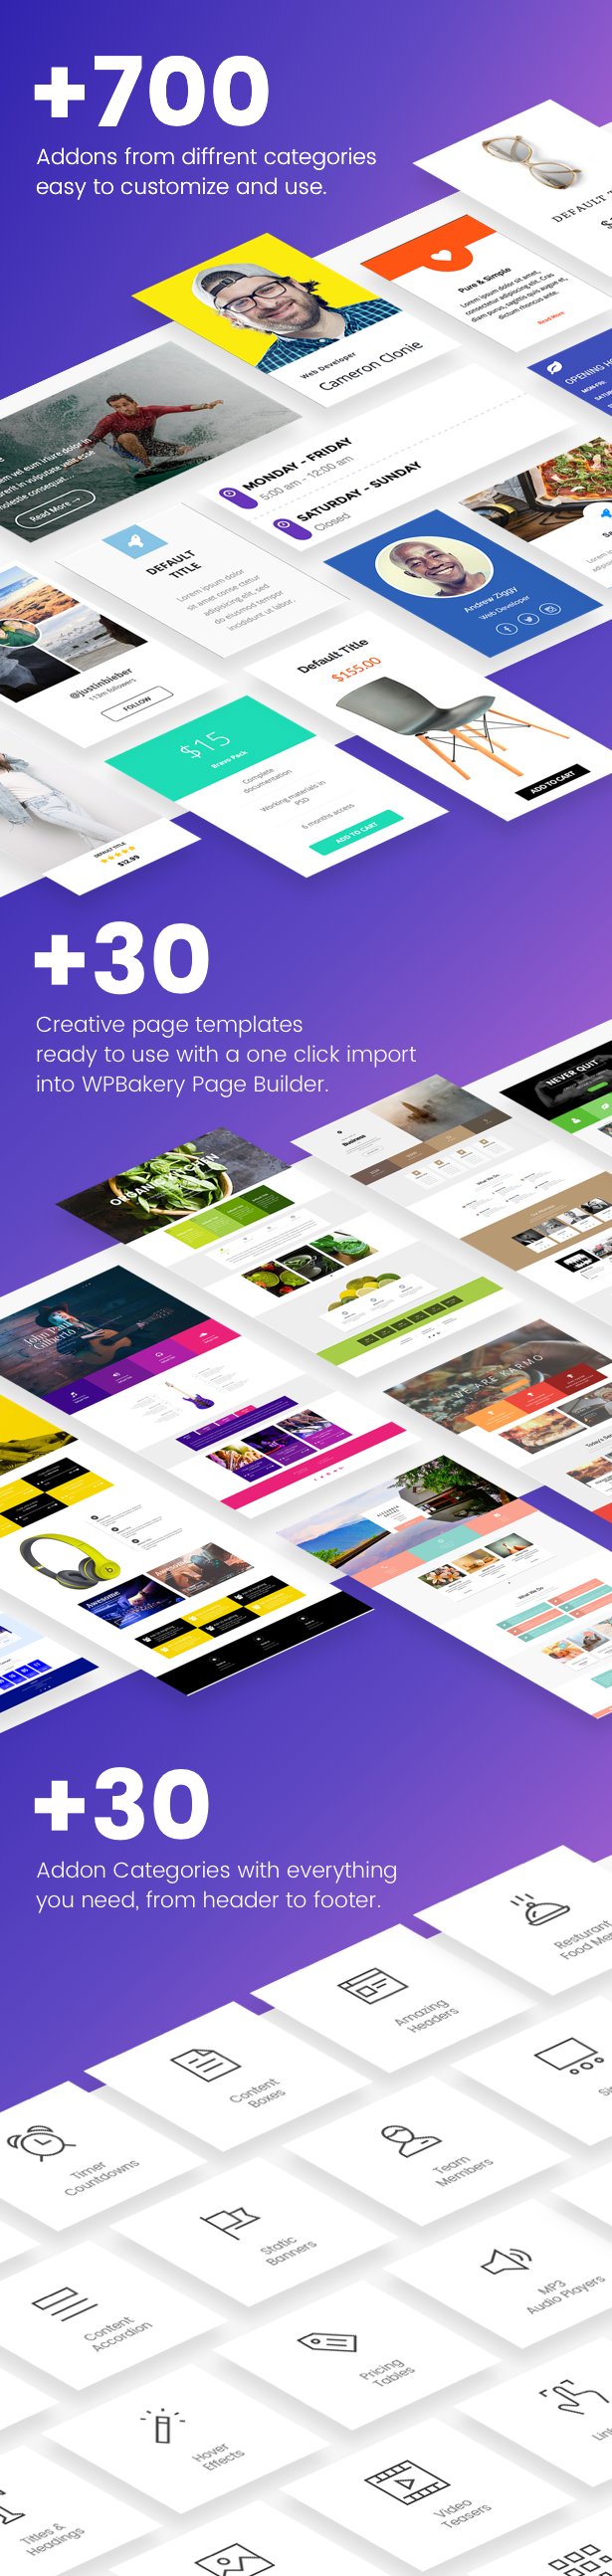 Unlimited Addons for WPBakery Page Builder (Visual Composer) - 2